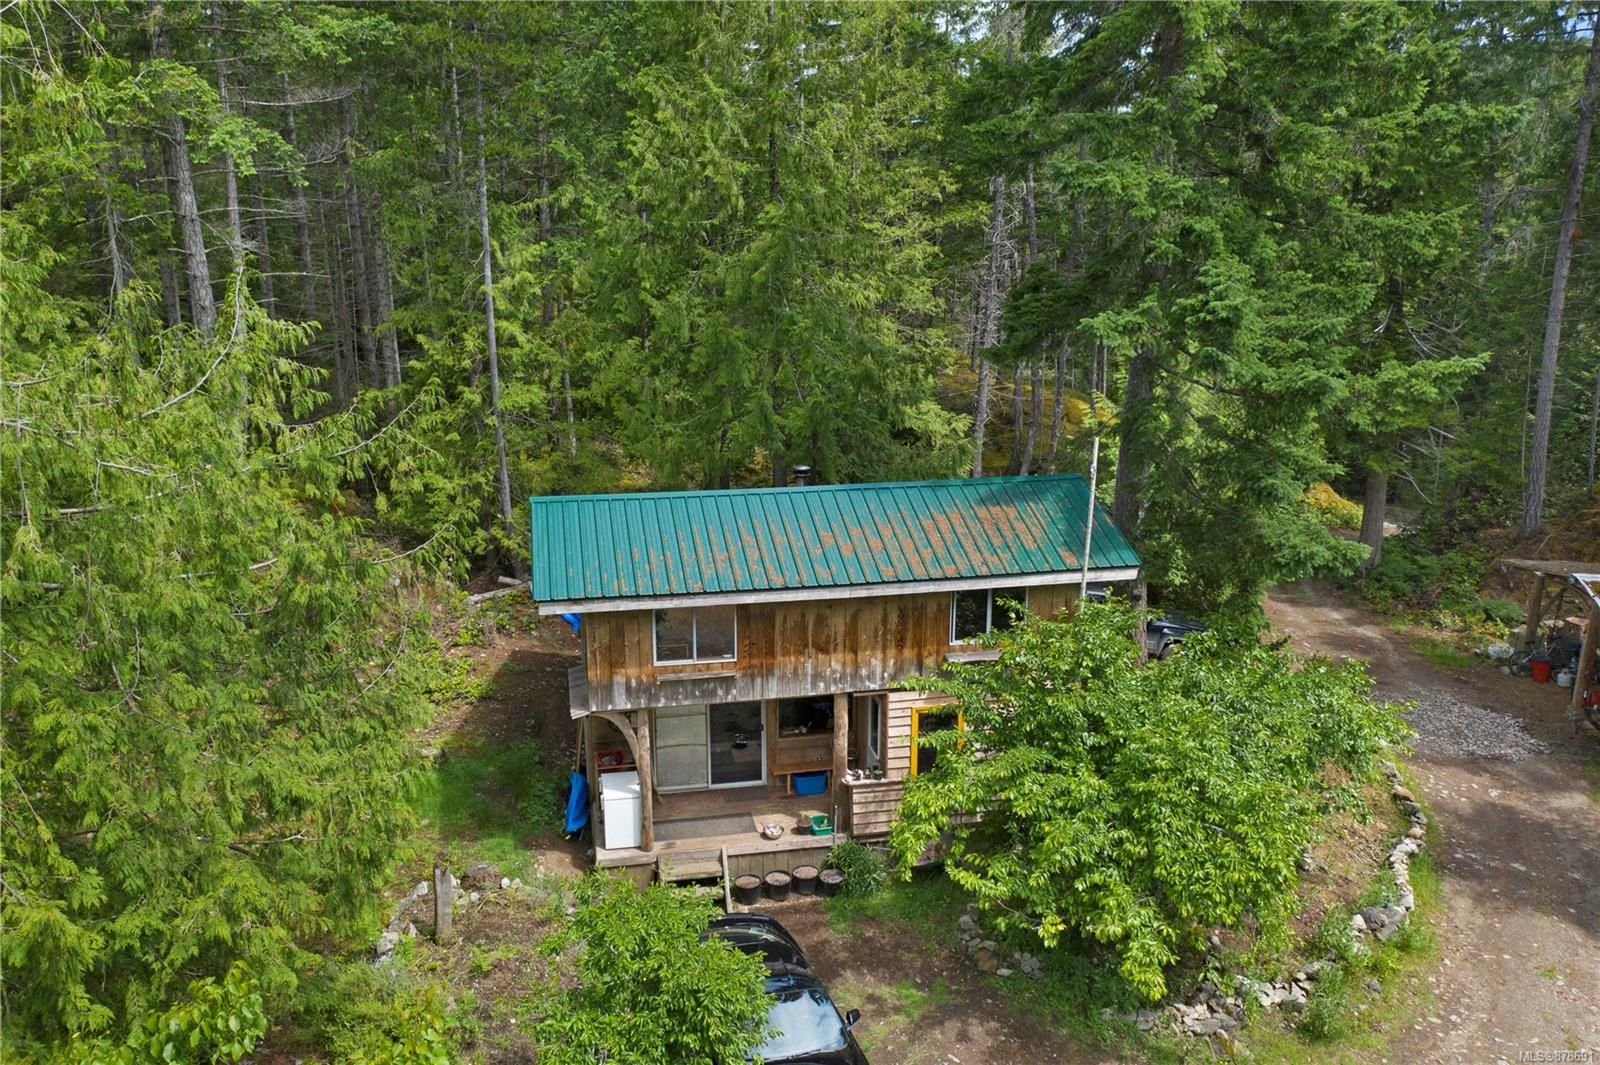 Photo 18: Photos: 979 Thunder Rd in : Isl Cortes Island House for sale (Islands)  : MLS®# 878691